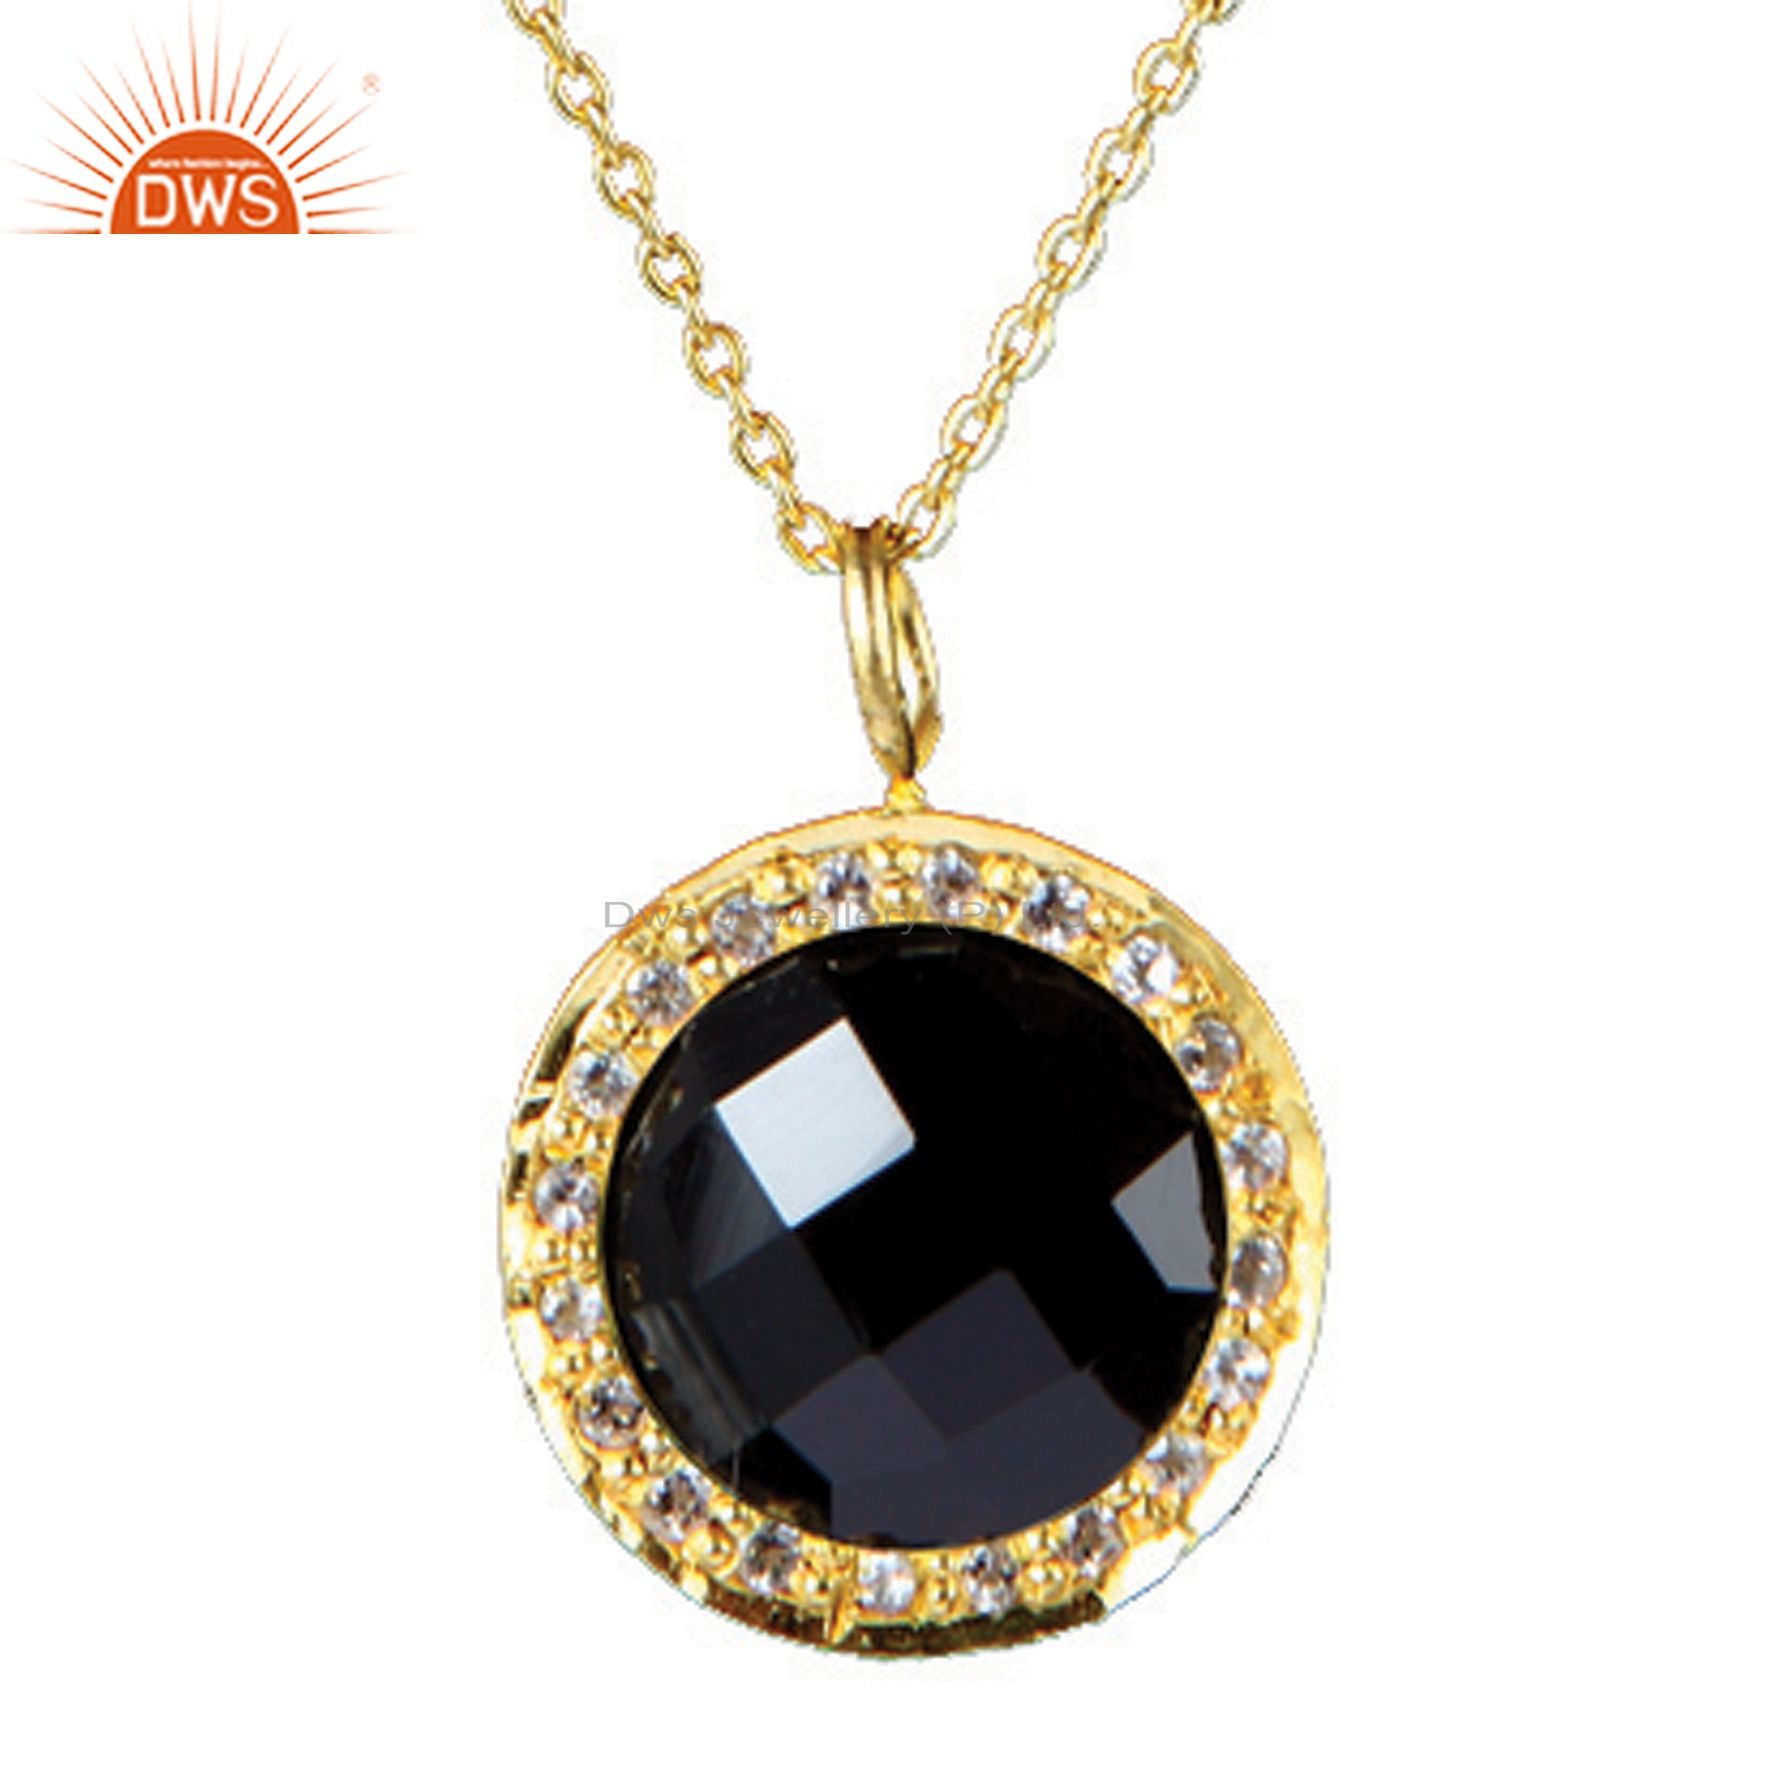 18k yellow gold over silver black onyx and white topaz pendant with chain